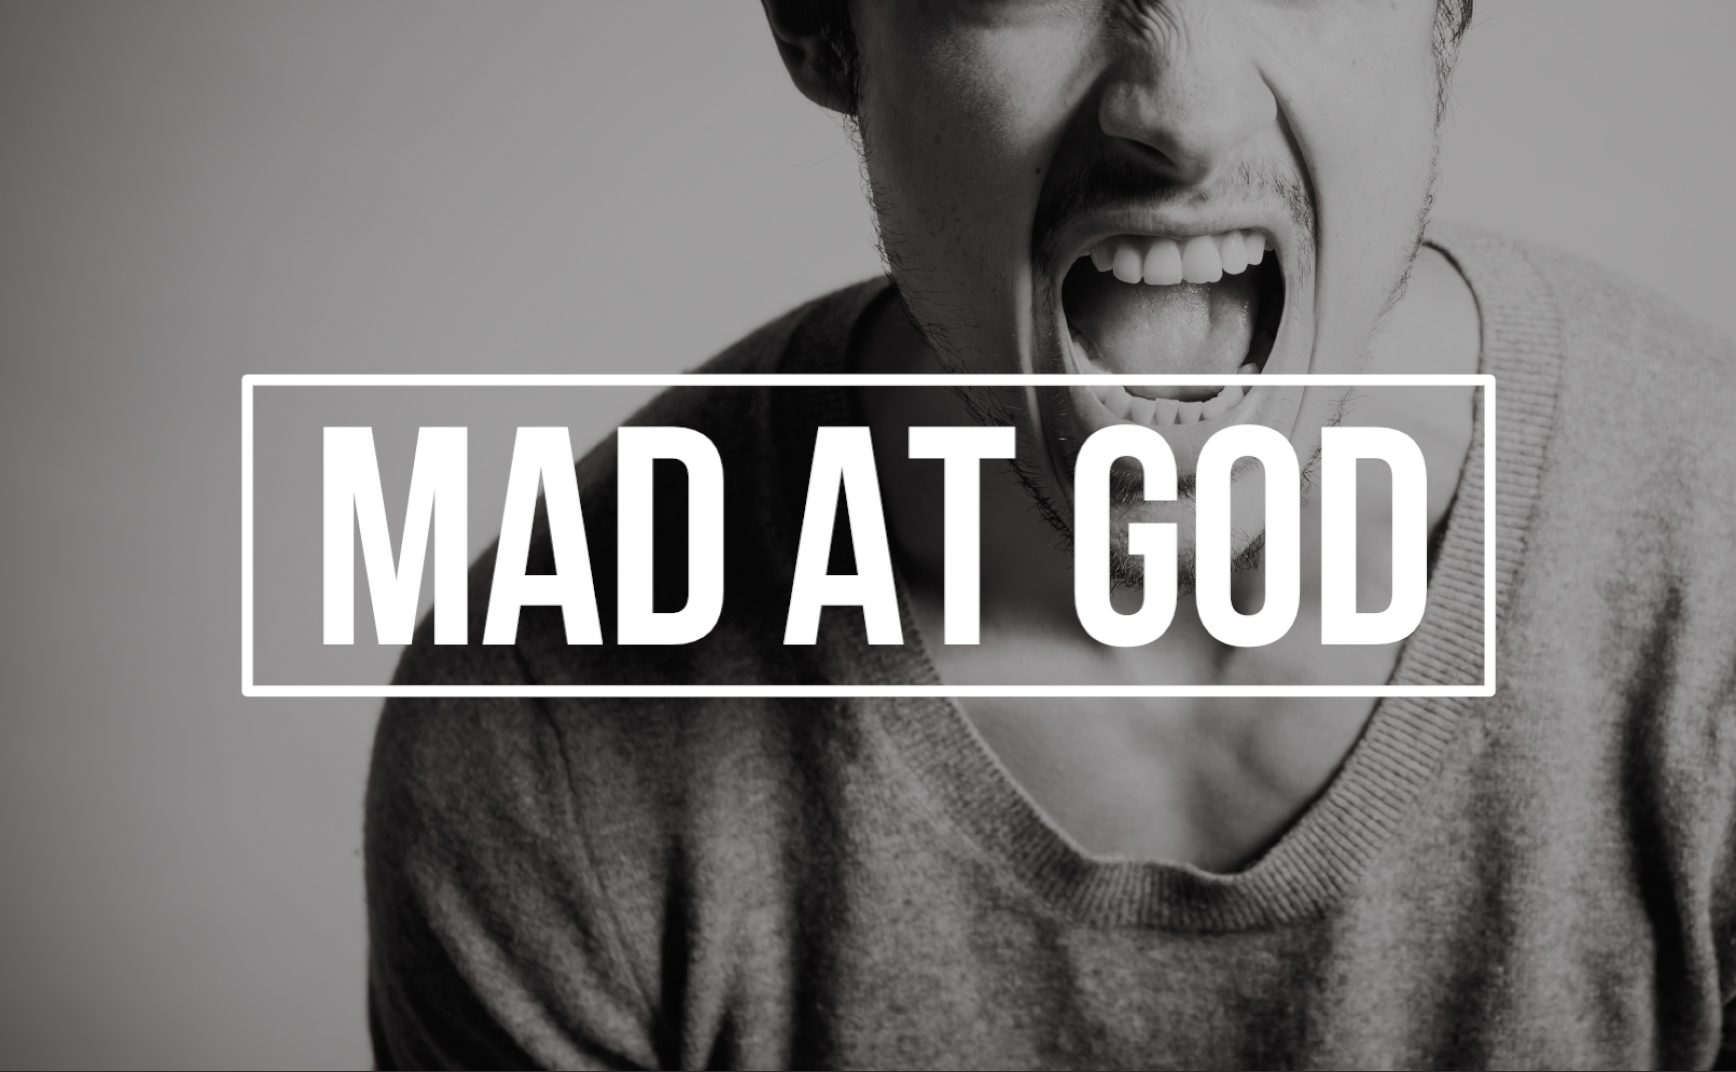 It's Ok To Be Mad At God